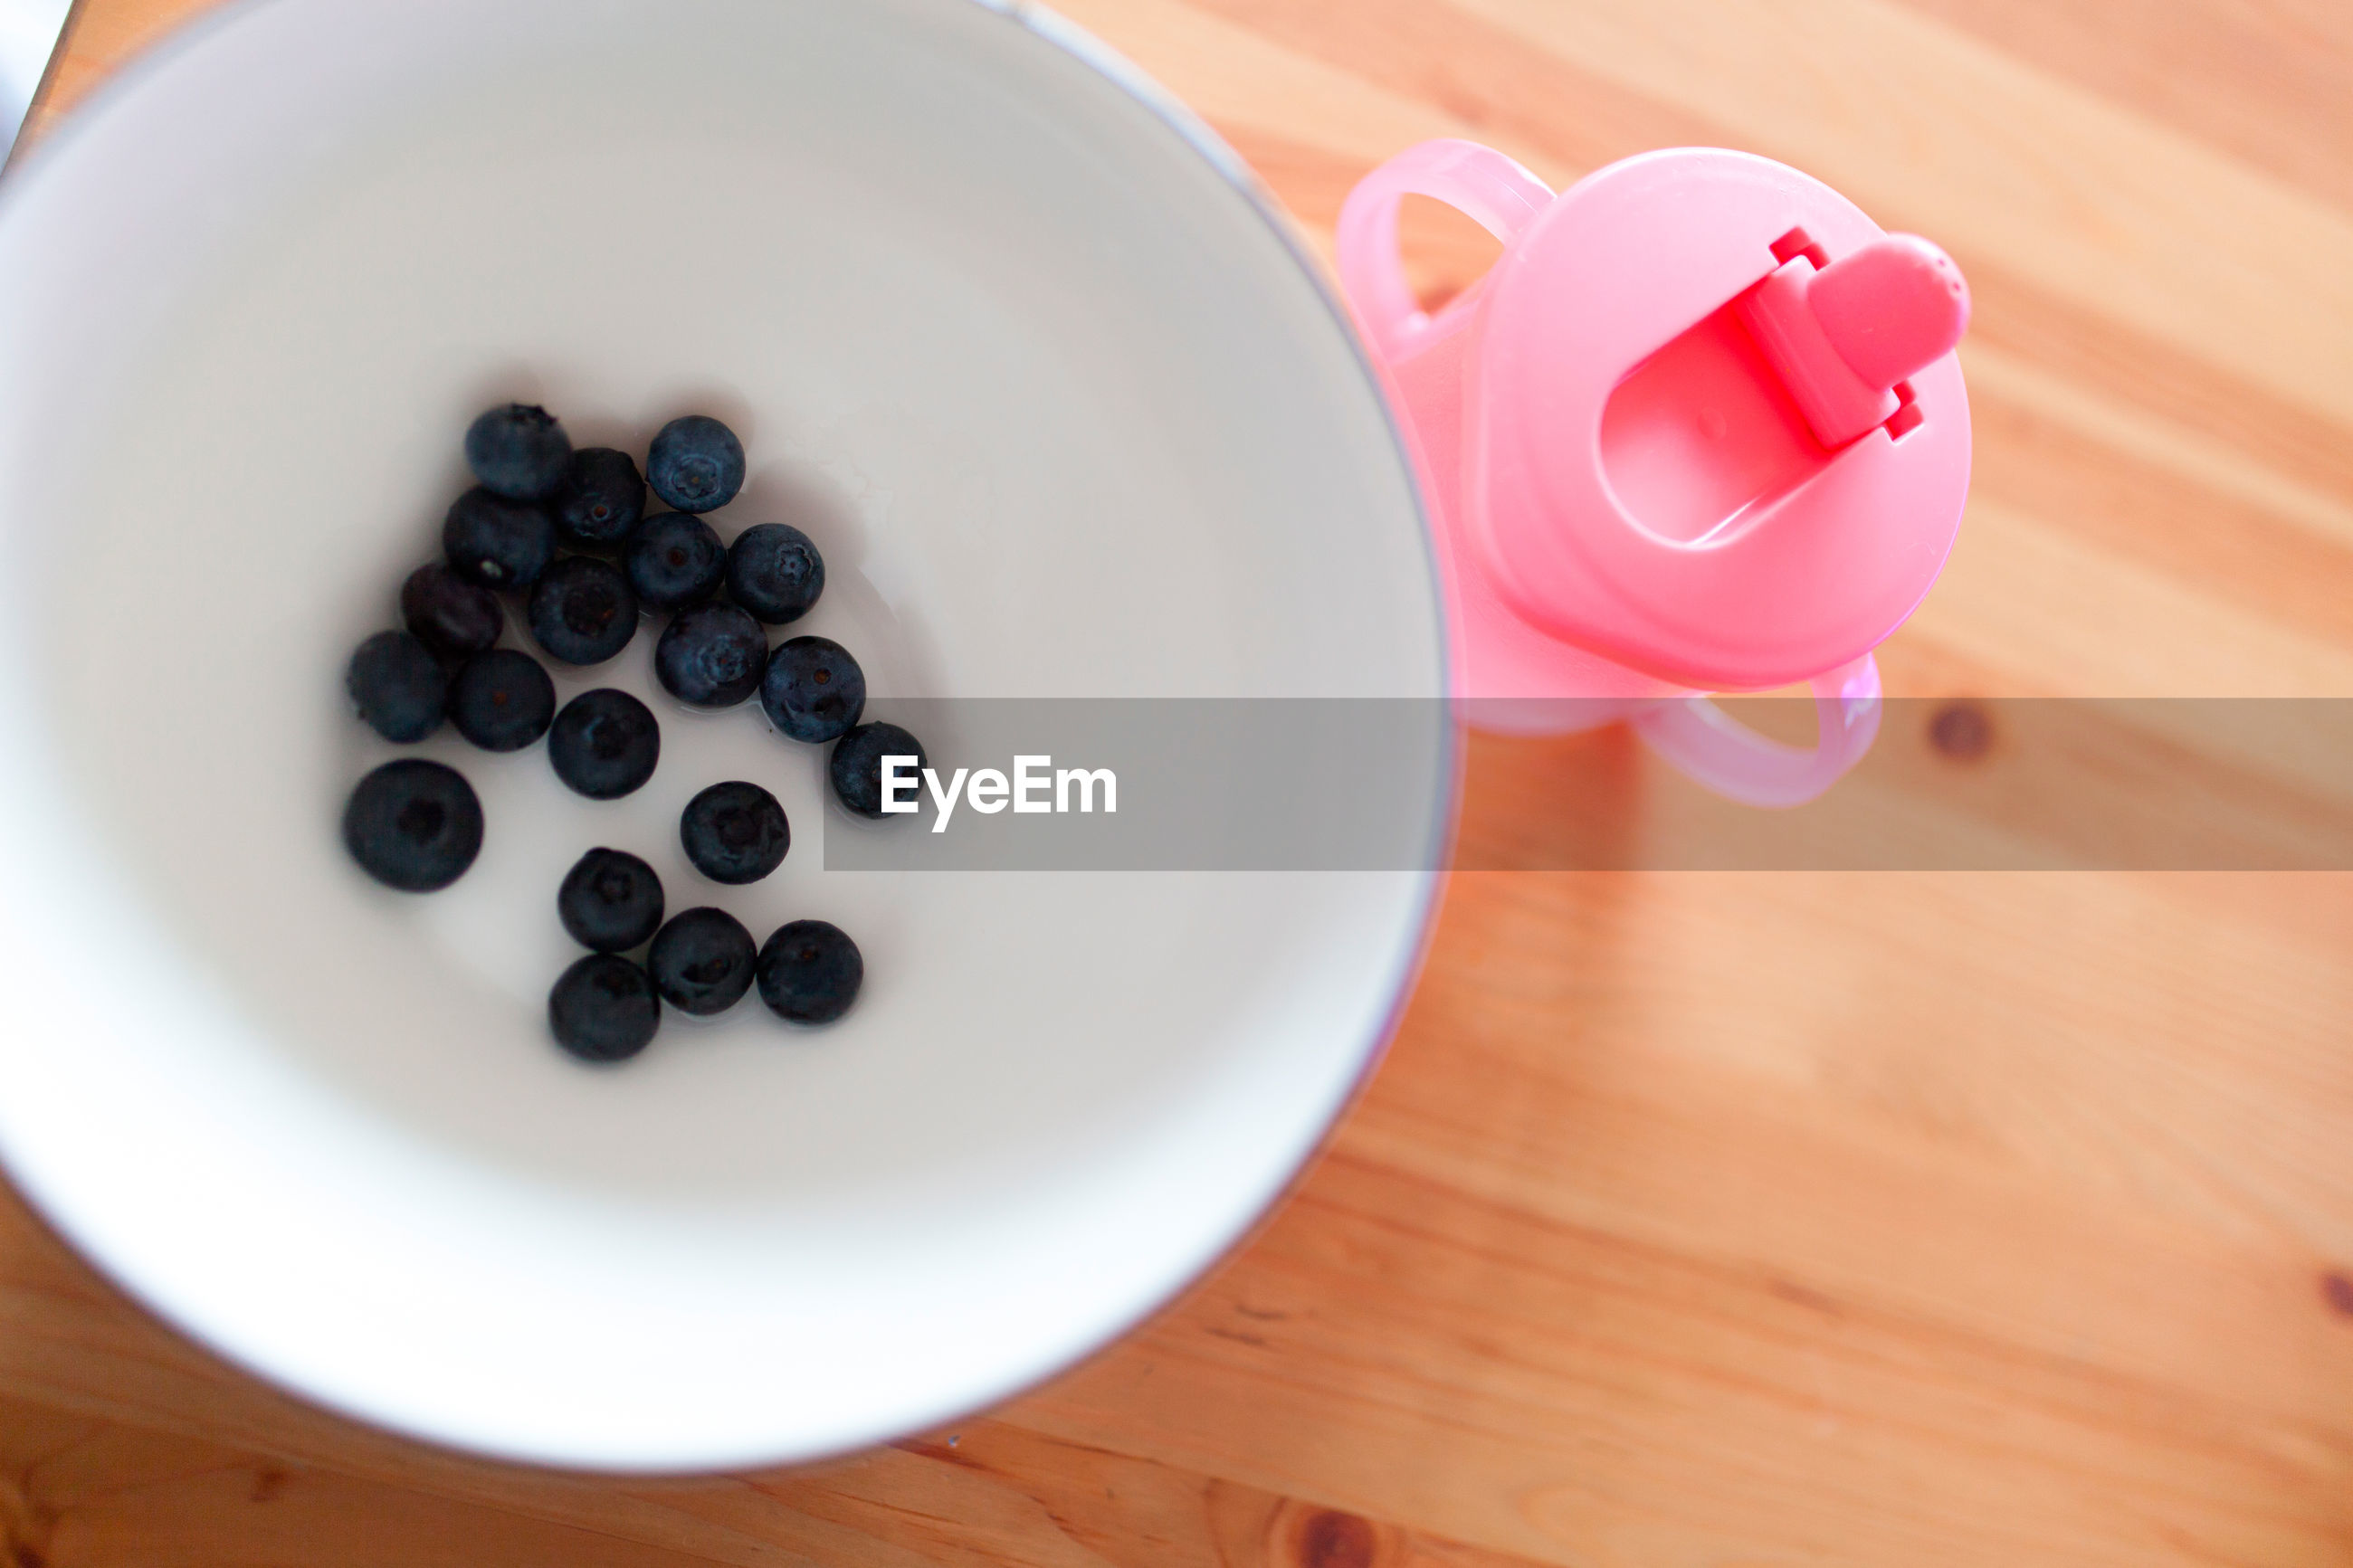 High angle view of blueberries in plate by pink bottle on table